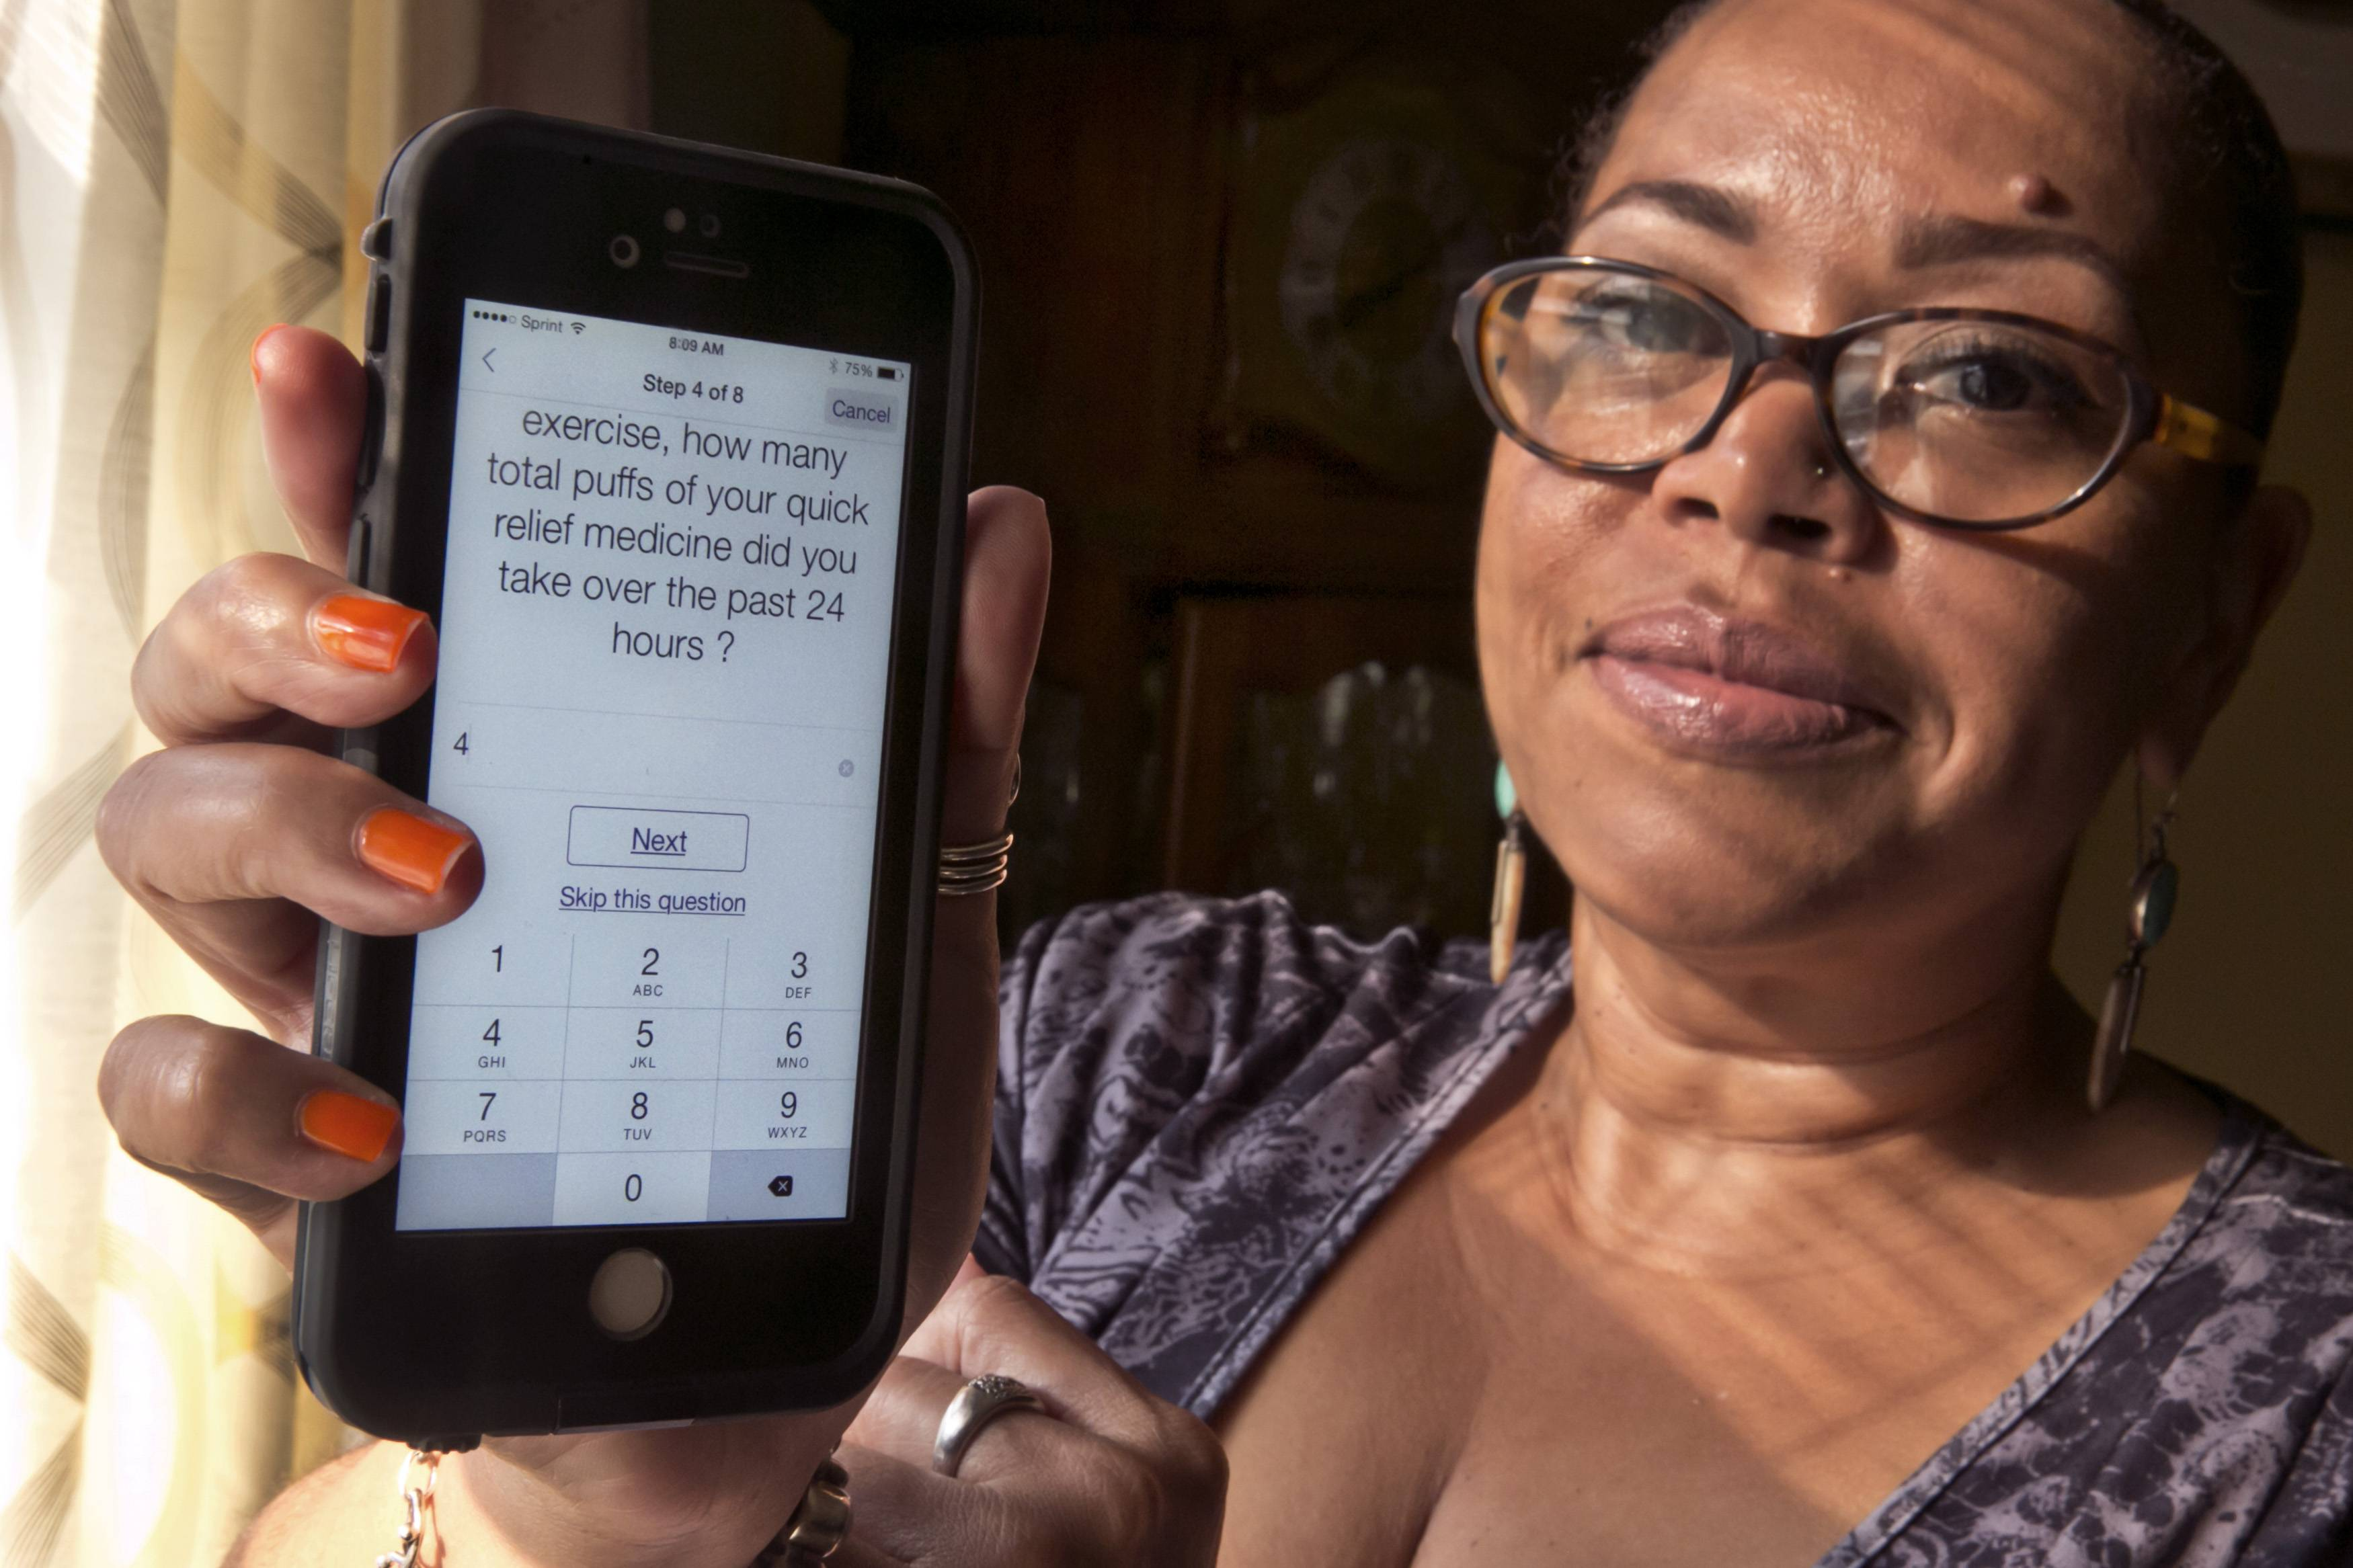 Asthma sufferer Elizabeth Ortiz, who uses the Asthma Health smartphone app daily to track her condition, measures her lung power each day by breathing into an inexpensive plastic device and then typing the results into the app, which also asks if she's had difficulty breathing or sleeping, or taken medication that day.